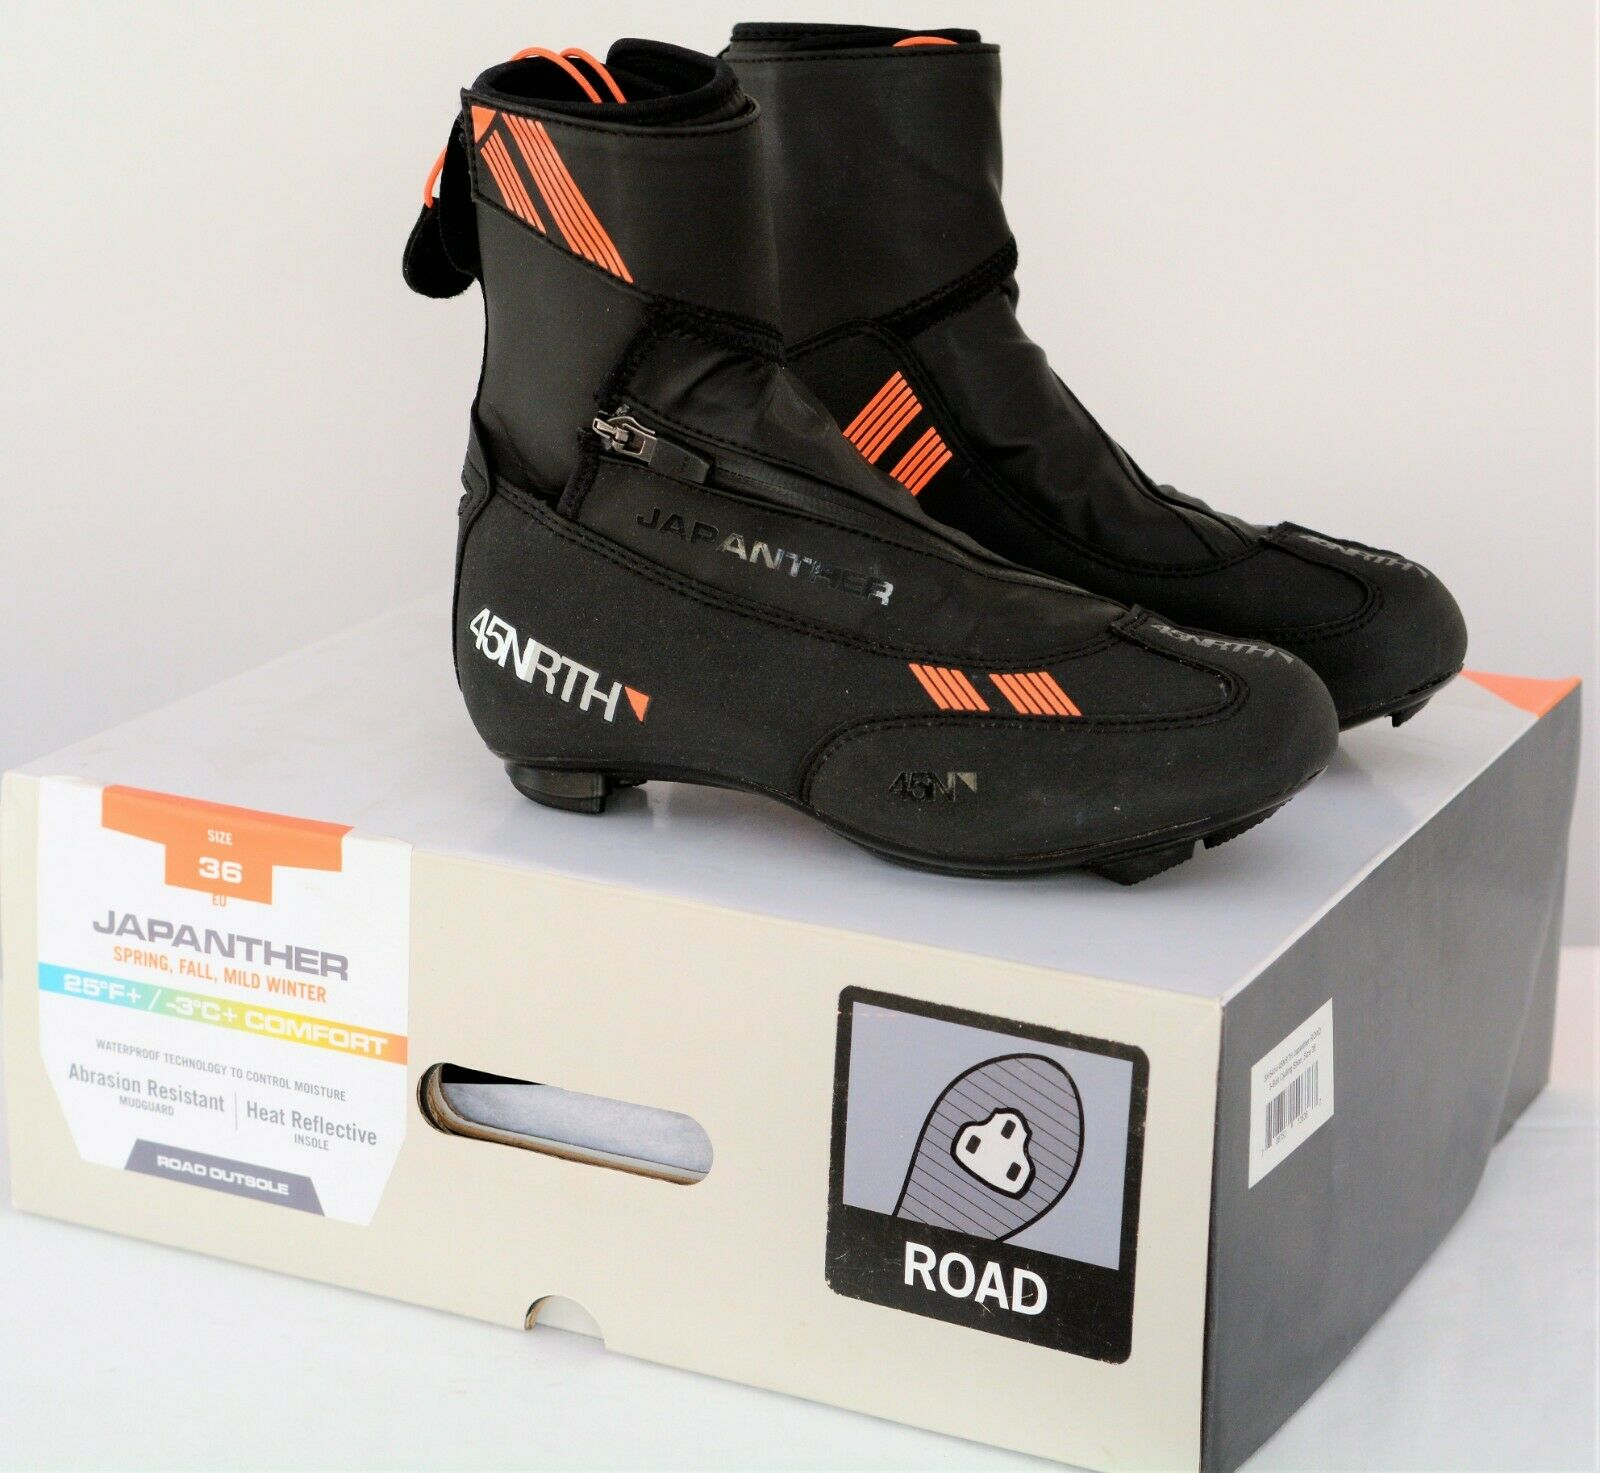 NEW 45NRTH Japanther Cycling Boot, Road, Winter Cold Weather